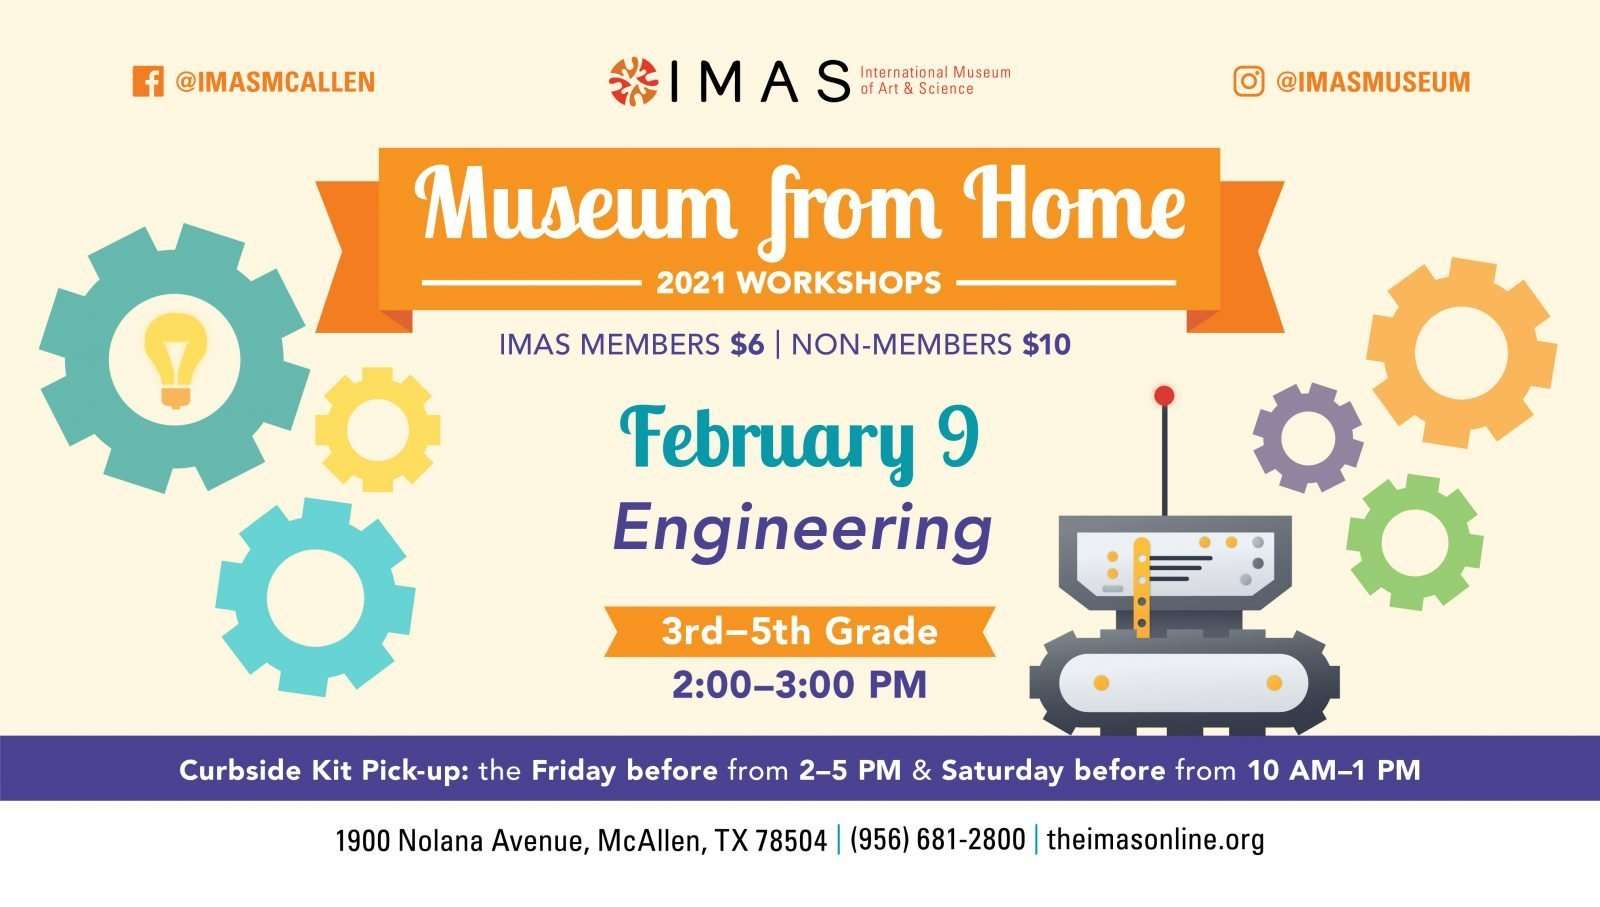 Homeschool Days at IMAS - February Engineering